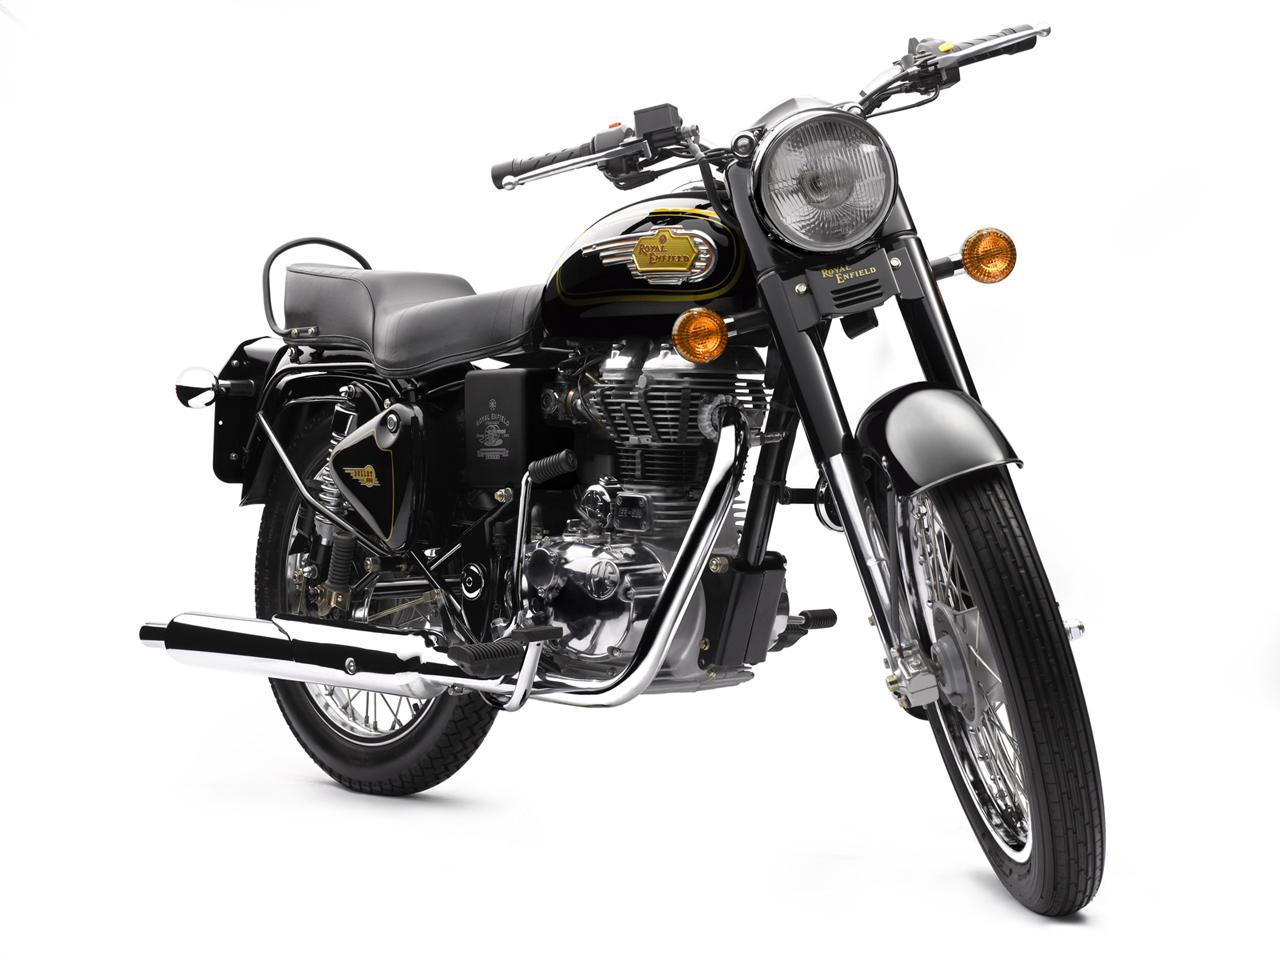 Enfield 500 Bullet (reduced effect) #6